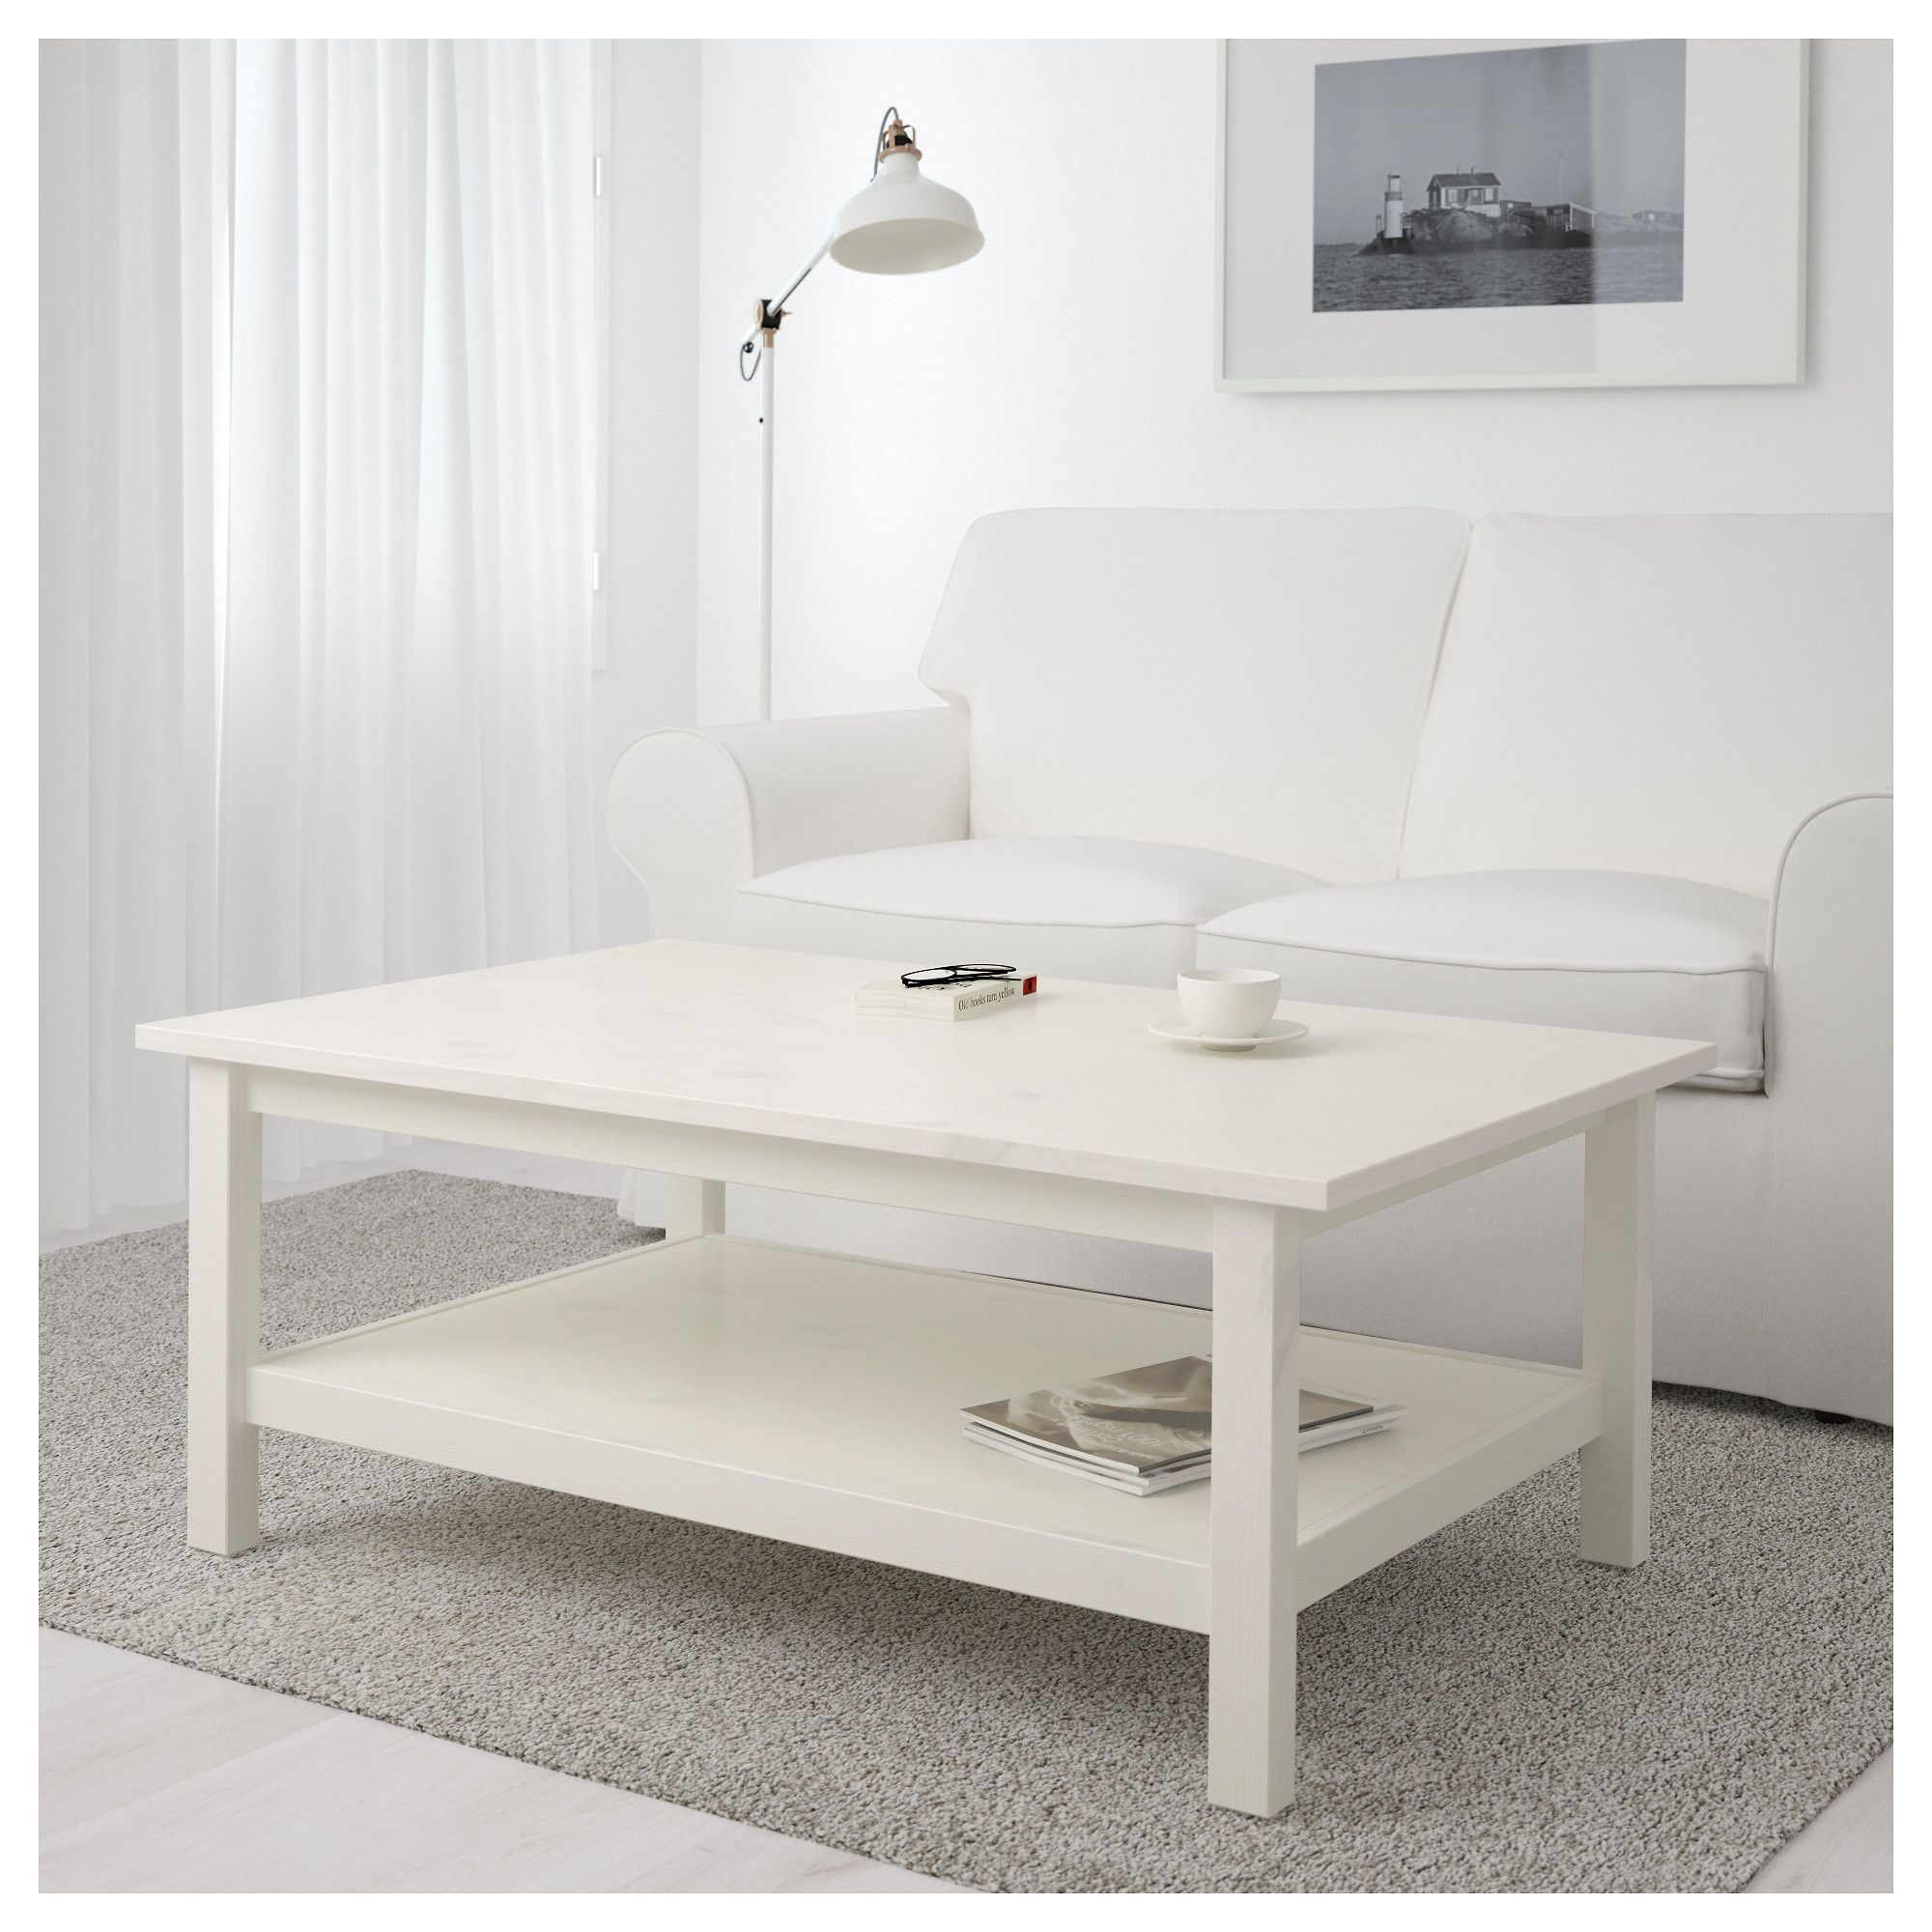 Shop for Furniture, Home Accessories & More Ikea coffee